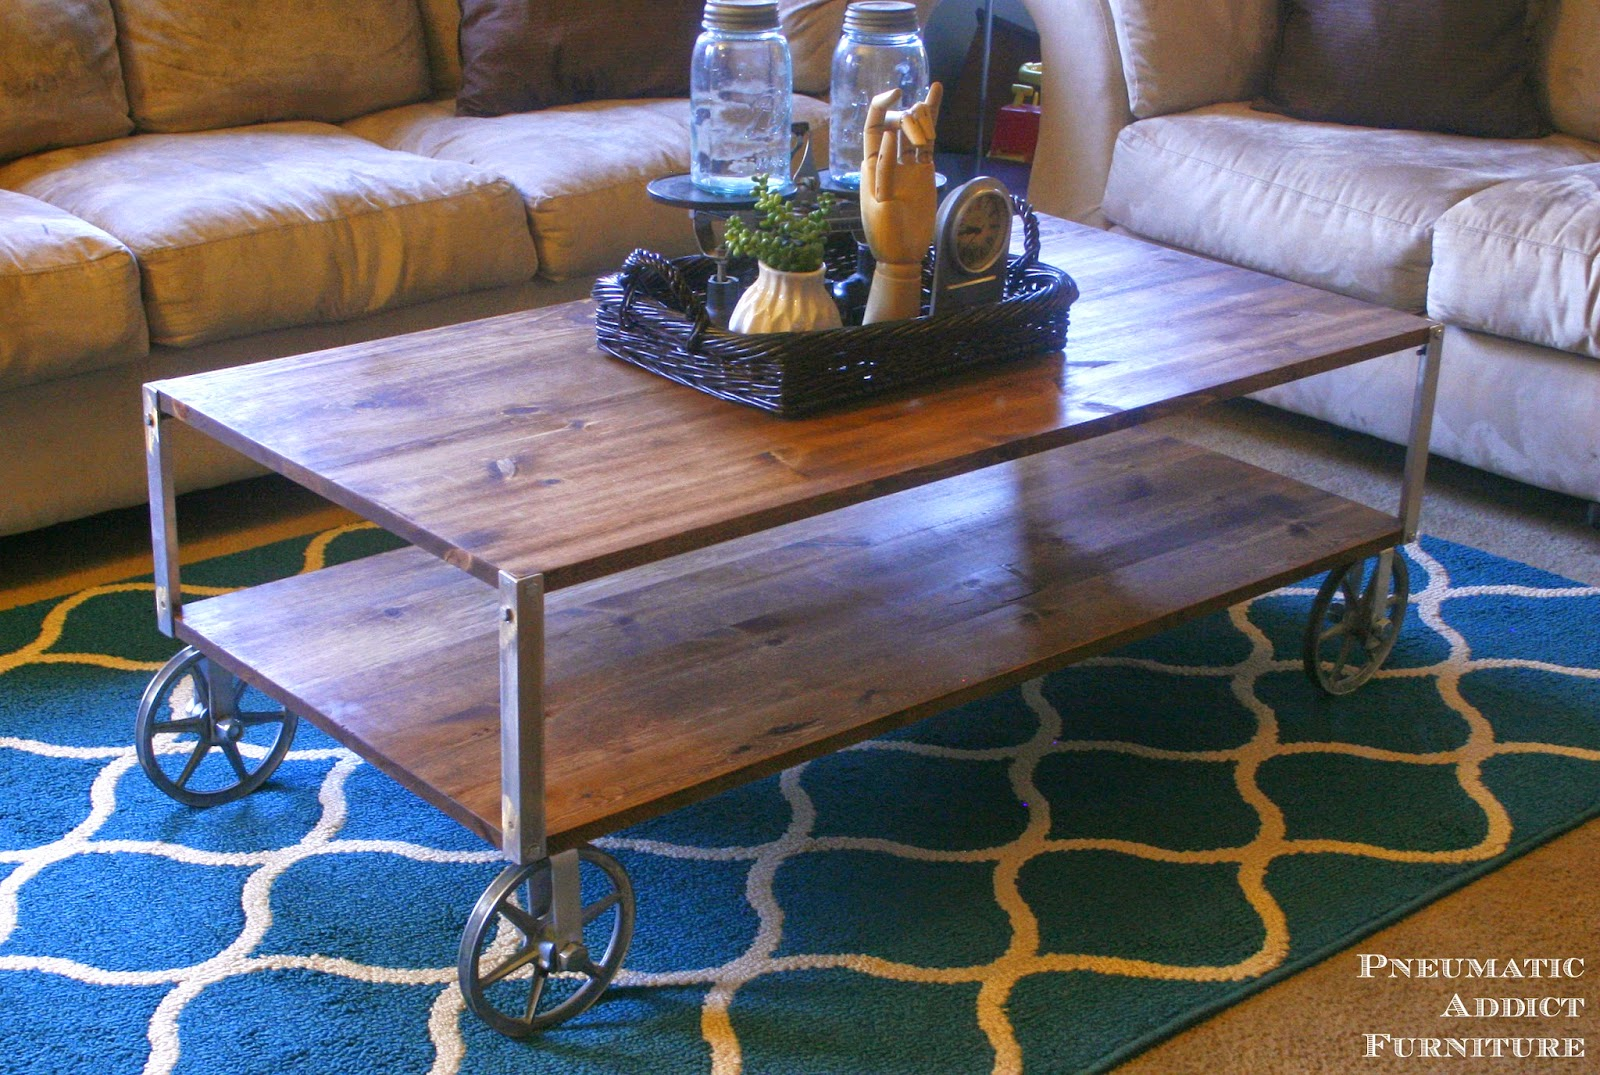 EASY Industrial Coffee Table No Welding Pneumatic Addict - Welding metal table legs